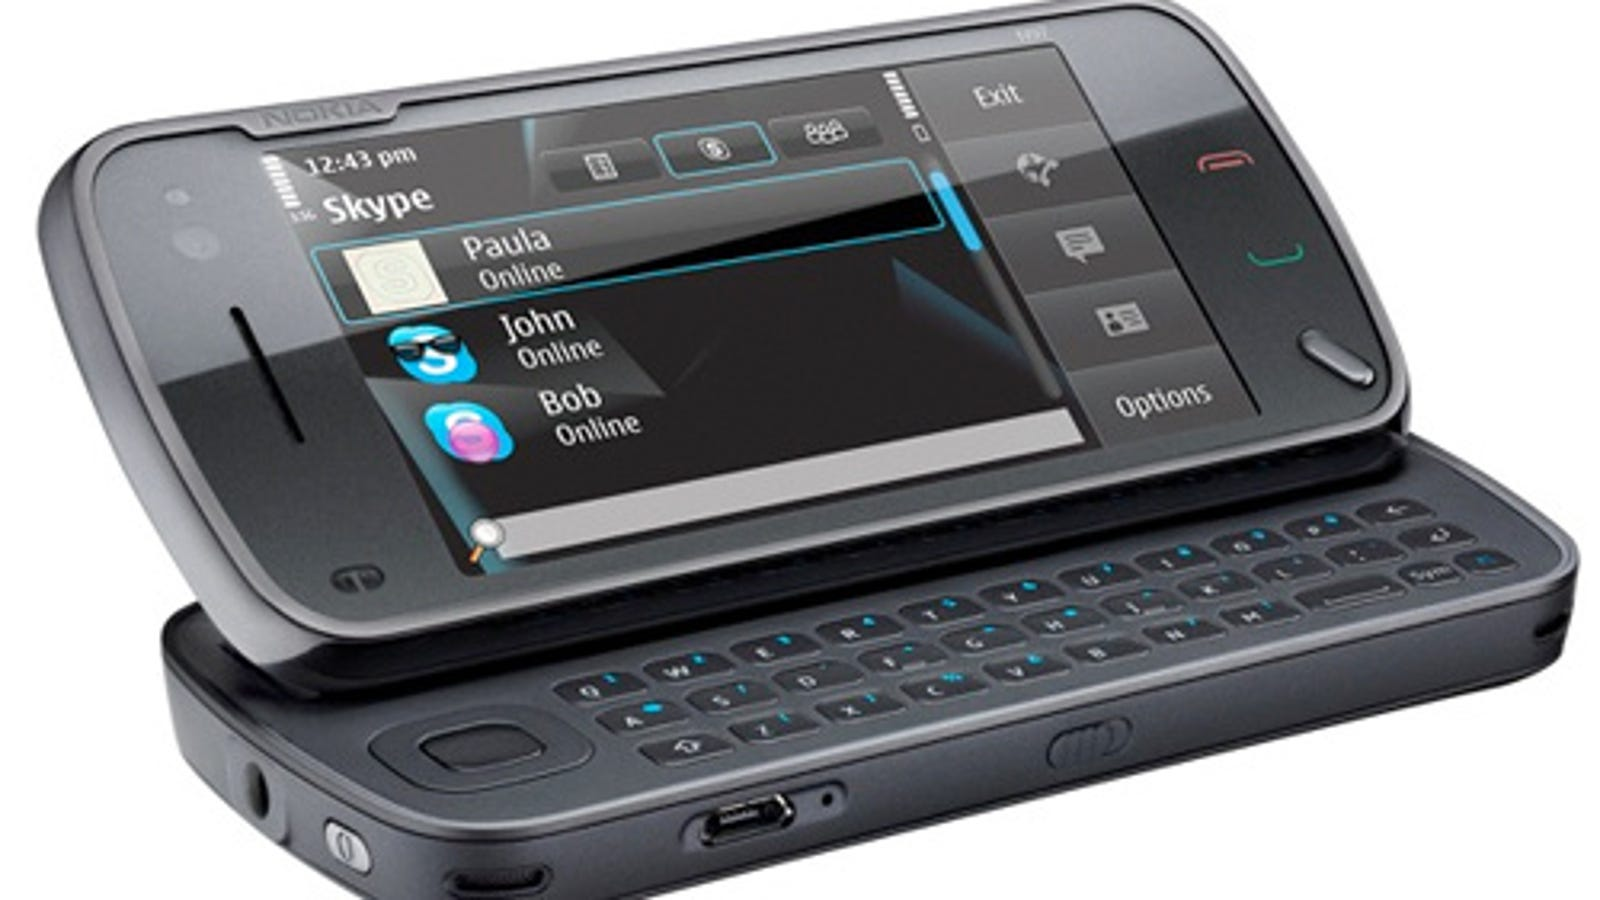 Free Skype App Now Available On Nokia Symbian Phones